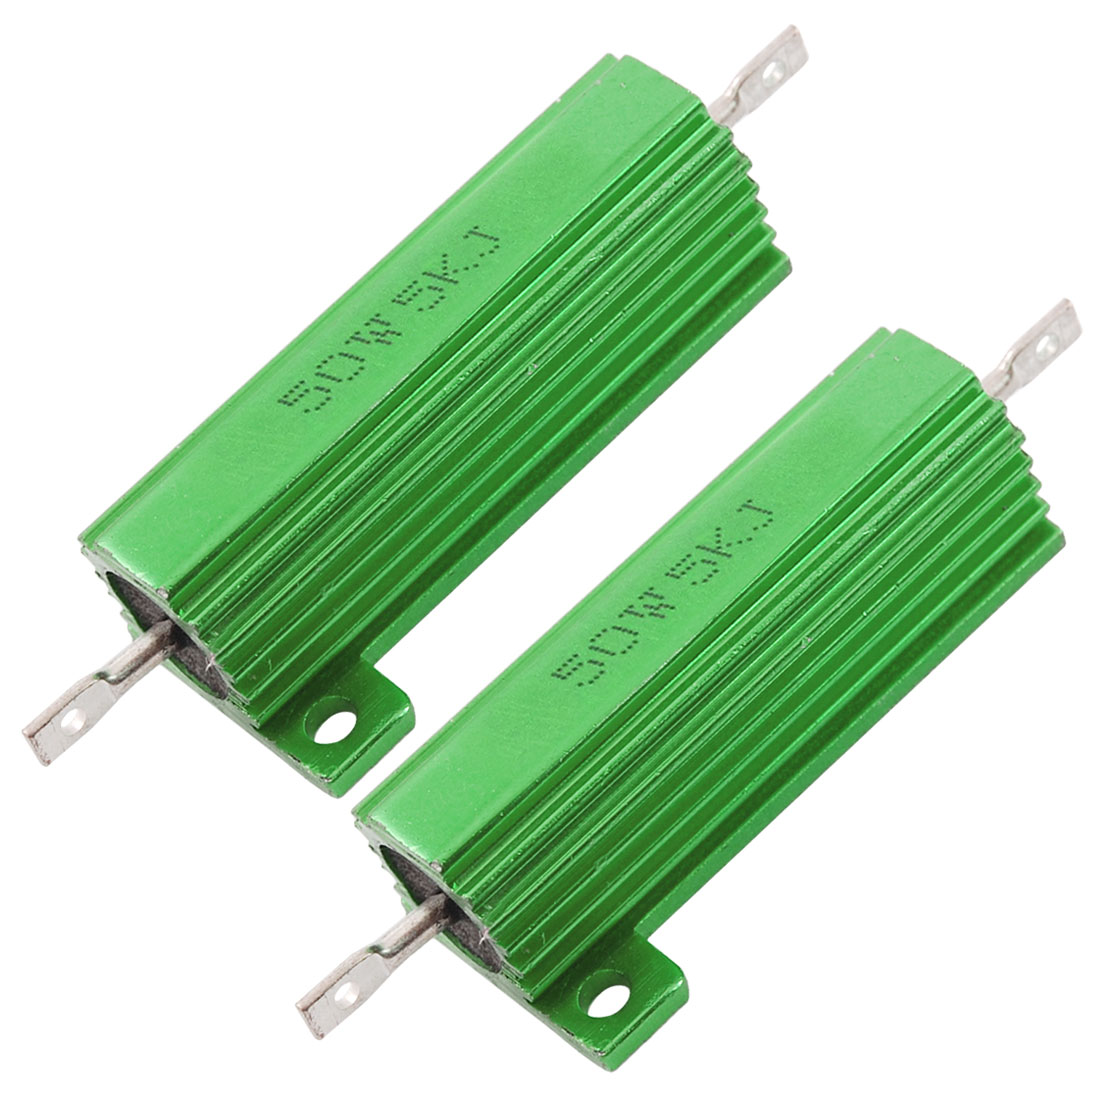 2 x Chassis Mounted 50W 5K Ohm 5% Aluminum Case Wirewound Resistors